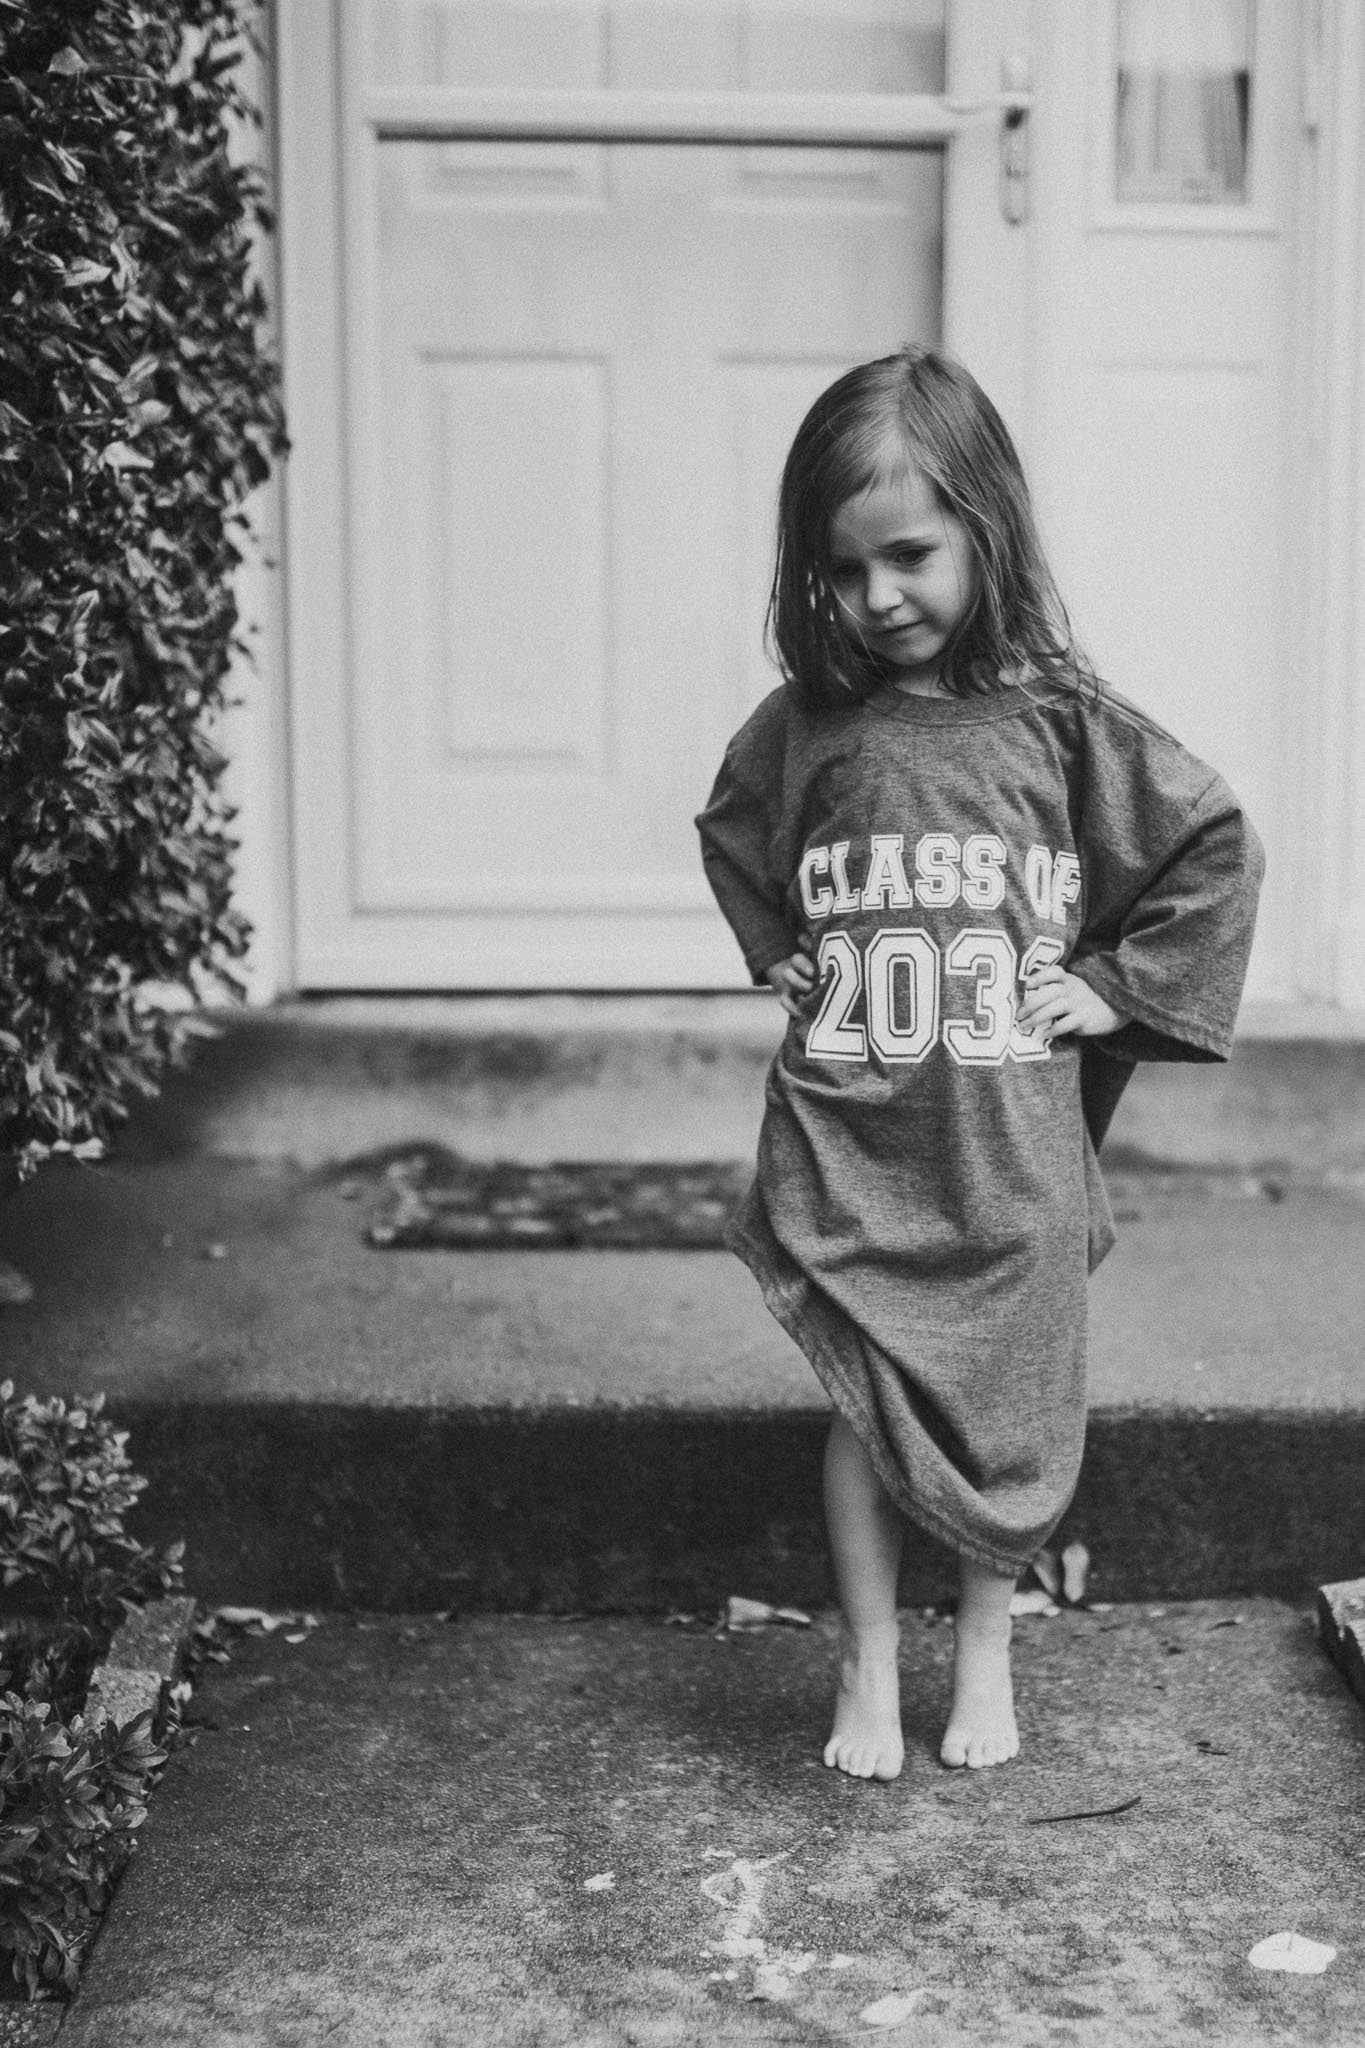 black and white class of 2033 shirt Toddler Girl Ashburn Virginia Lifestyle Documentary Family Marti Austin Photography